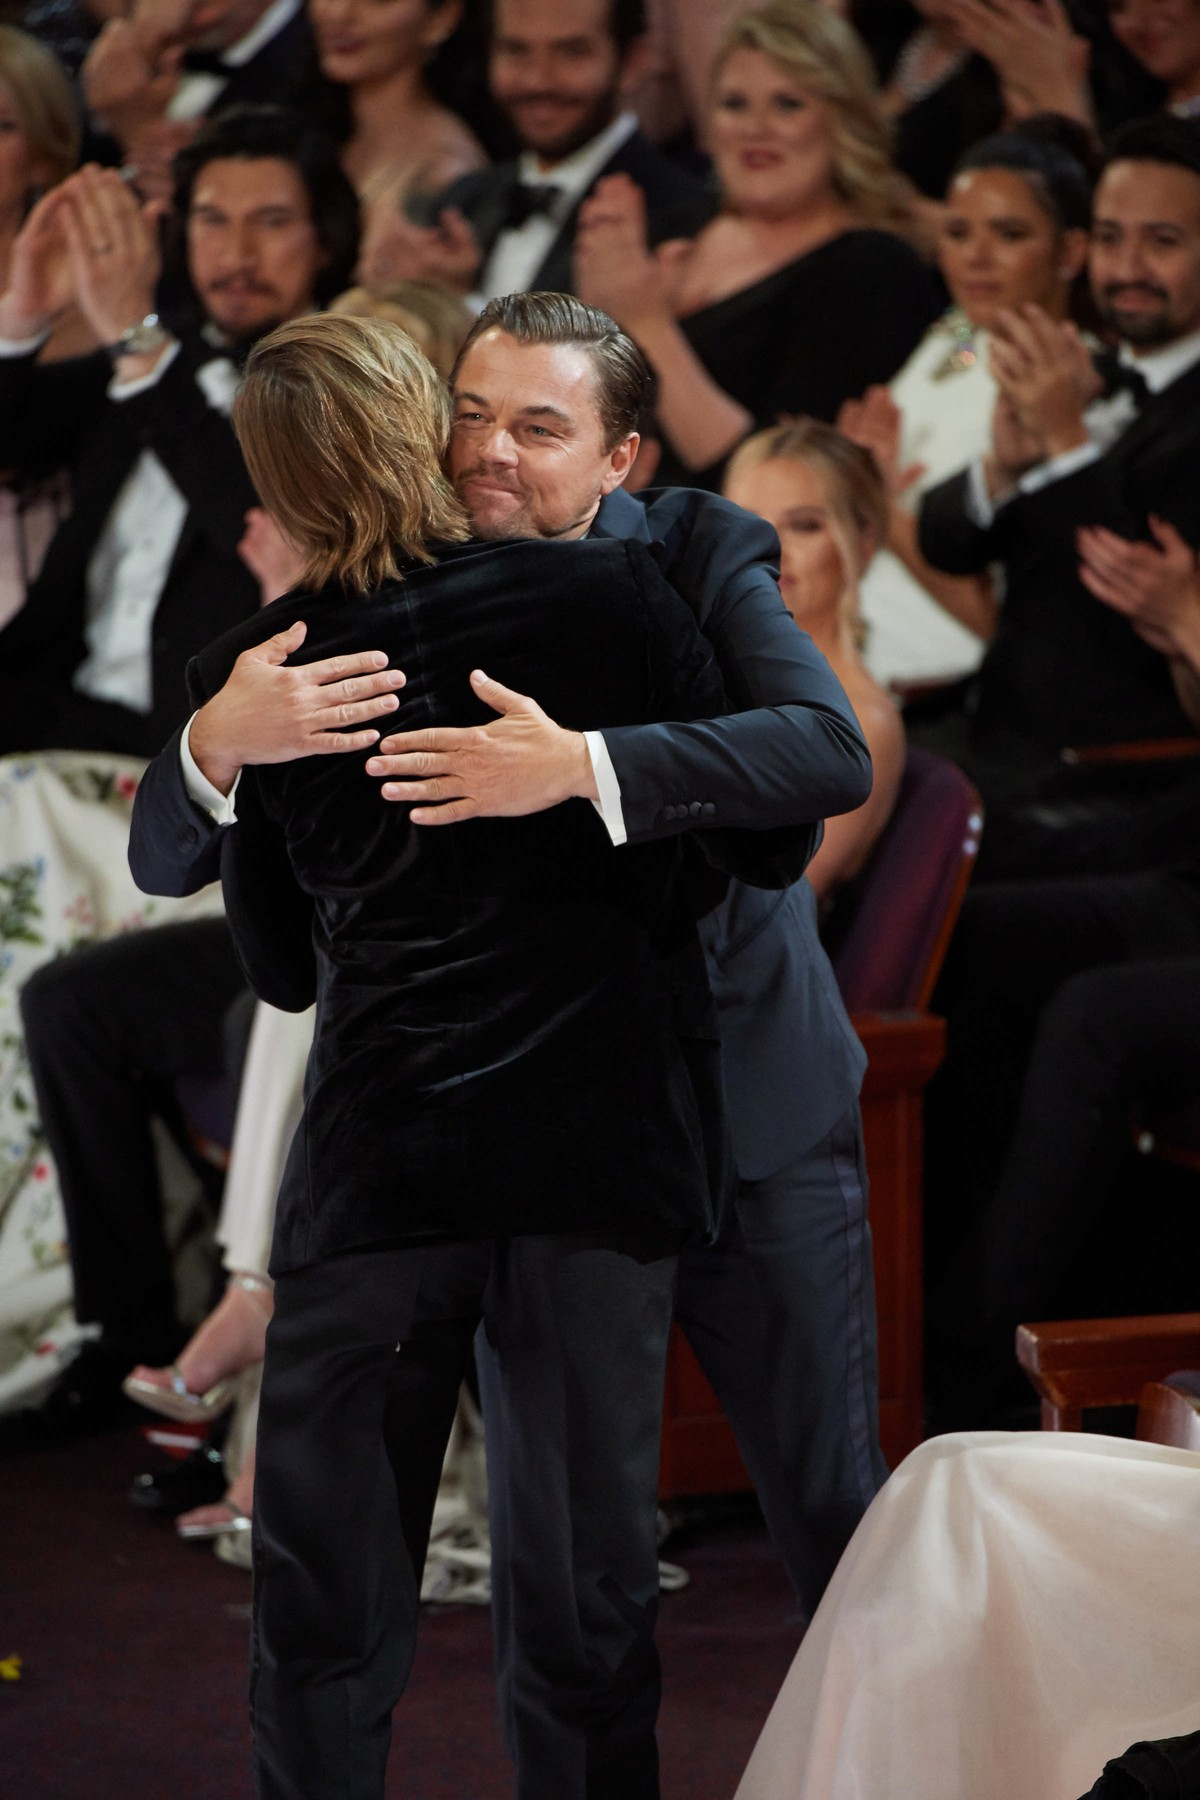 Oscar® nominees Leonardo DiCaprio and Brad Pitt during the live ABC Telecast of The 92nd Oscars® at the Dolby® Theatre in Hollywood, CA on Sunday, February 9, 2020., Image: 497507794, License: Rights-managed, Restrictions: For Editorial Use Only, Model Release: no, Credit line: Michael Yada / PictureLux / Profimedia